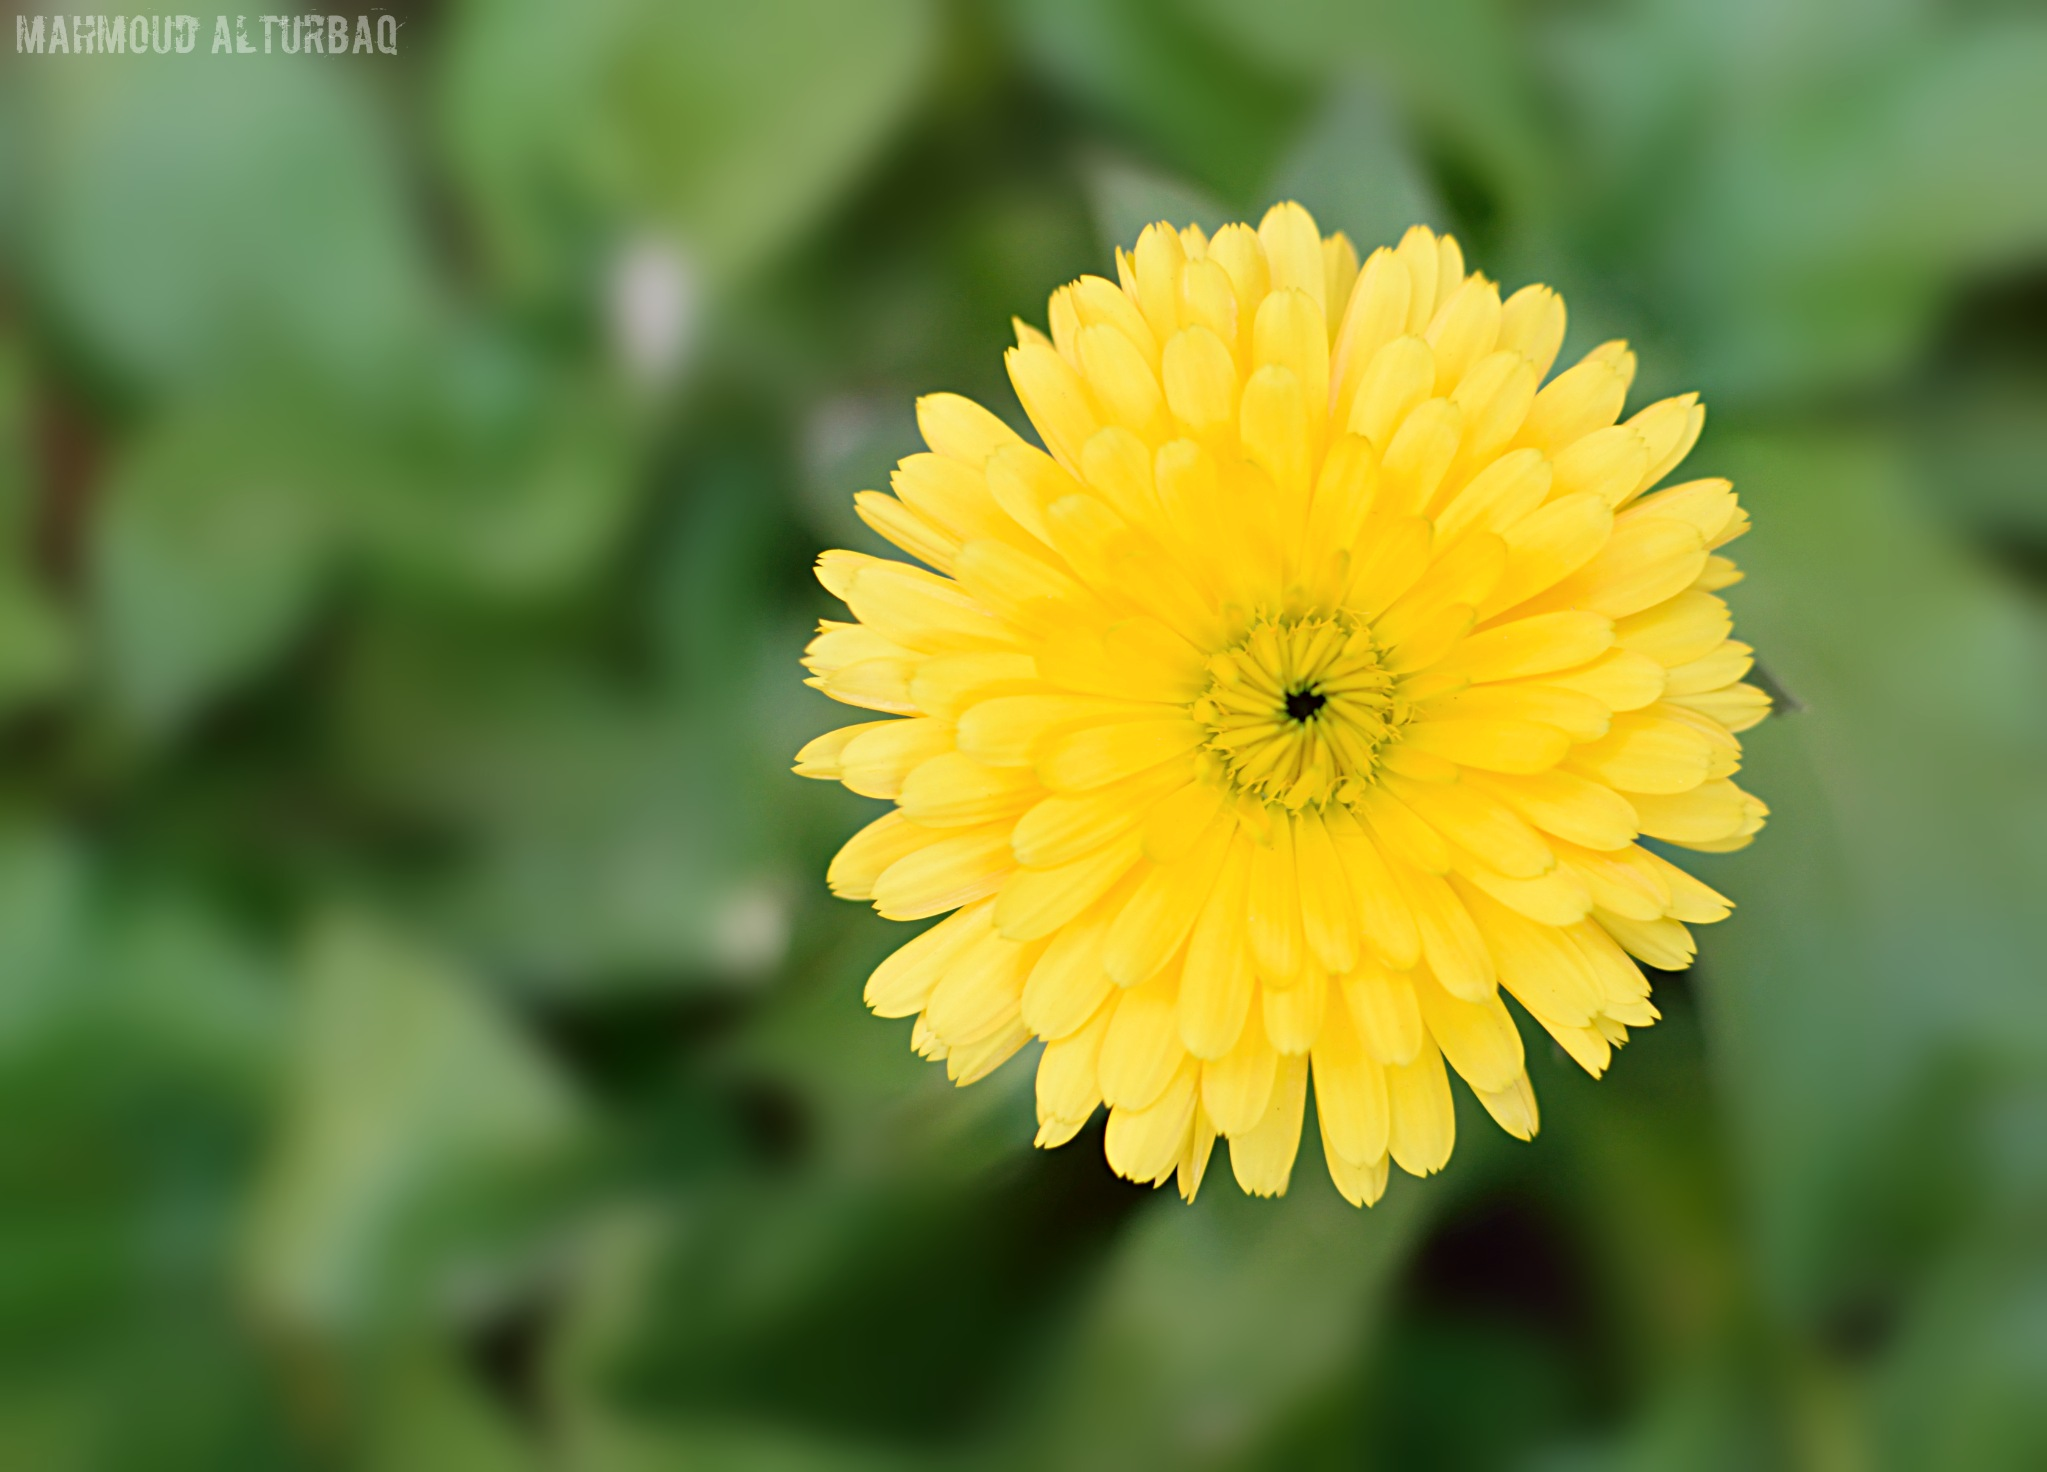 a yellow flower by Mahmoud Alturbaq